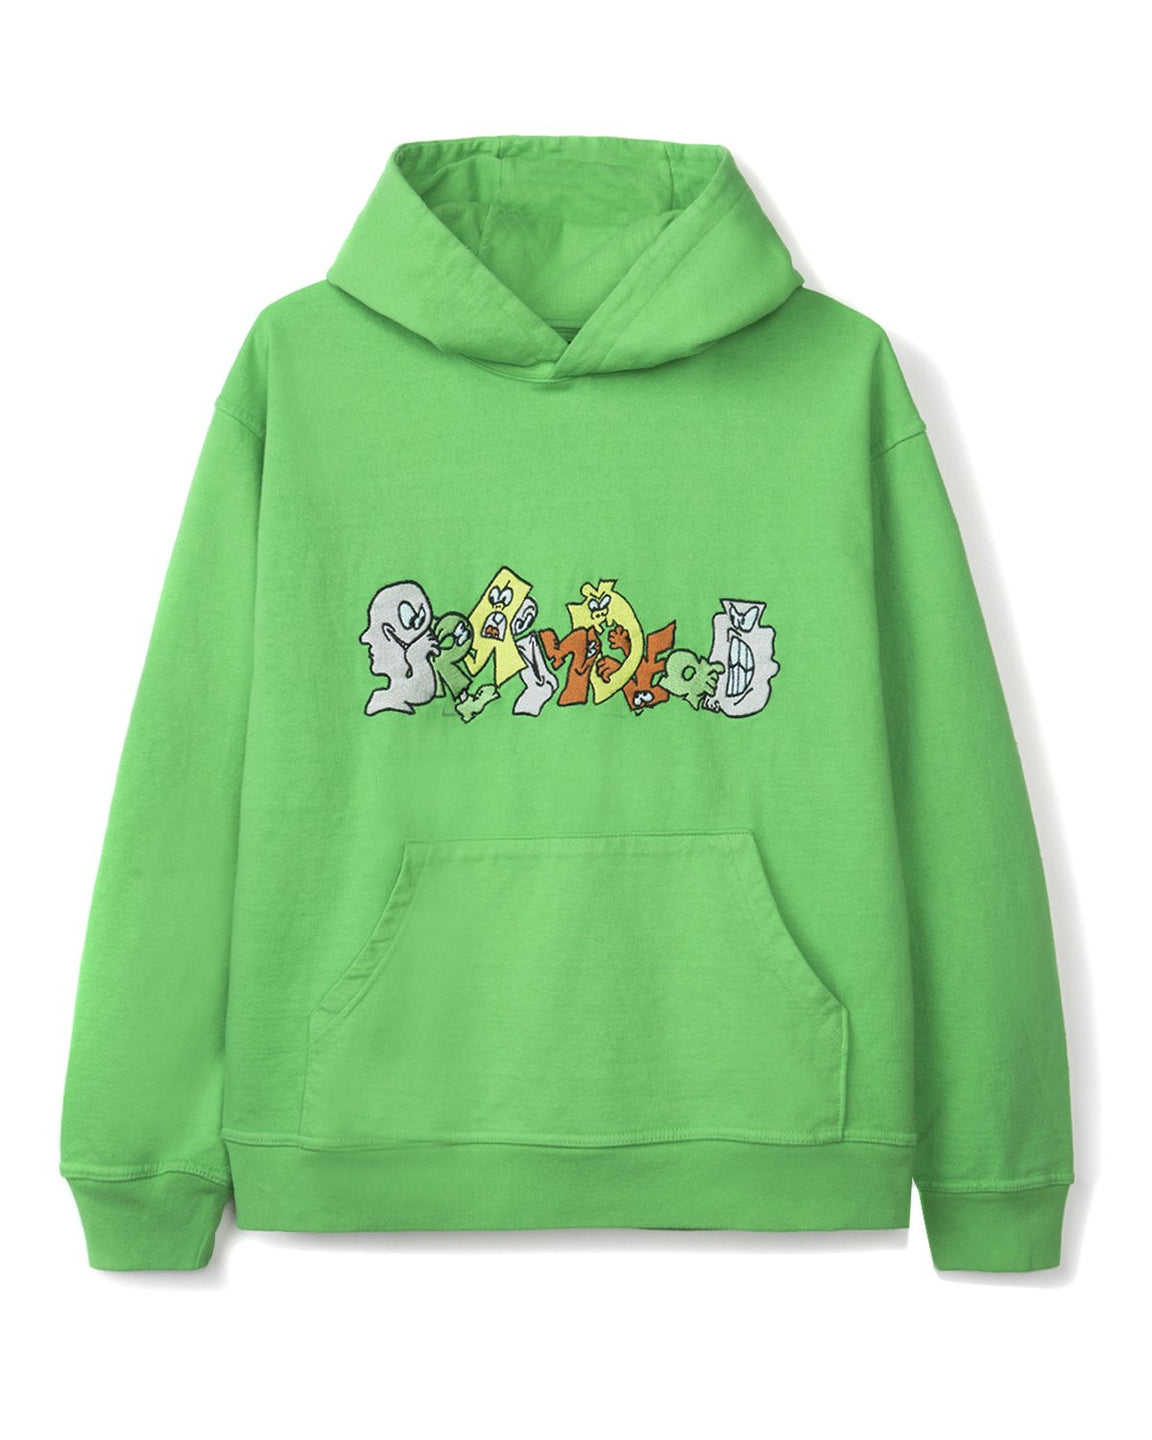 Embroidered Graffiti Hoodie - Kelly Green